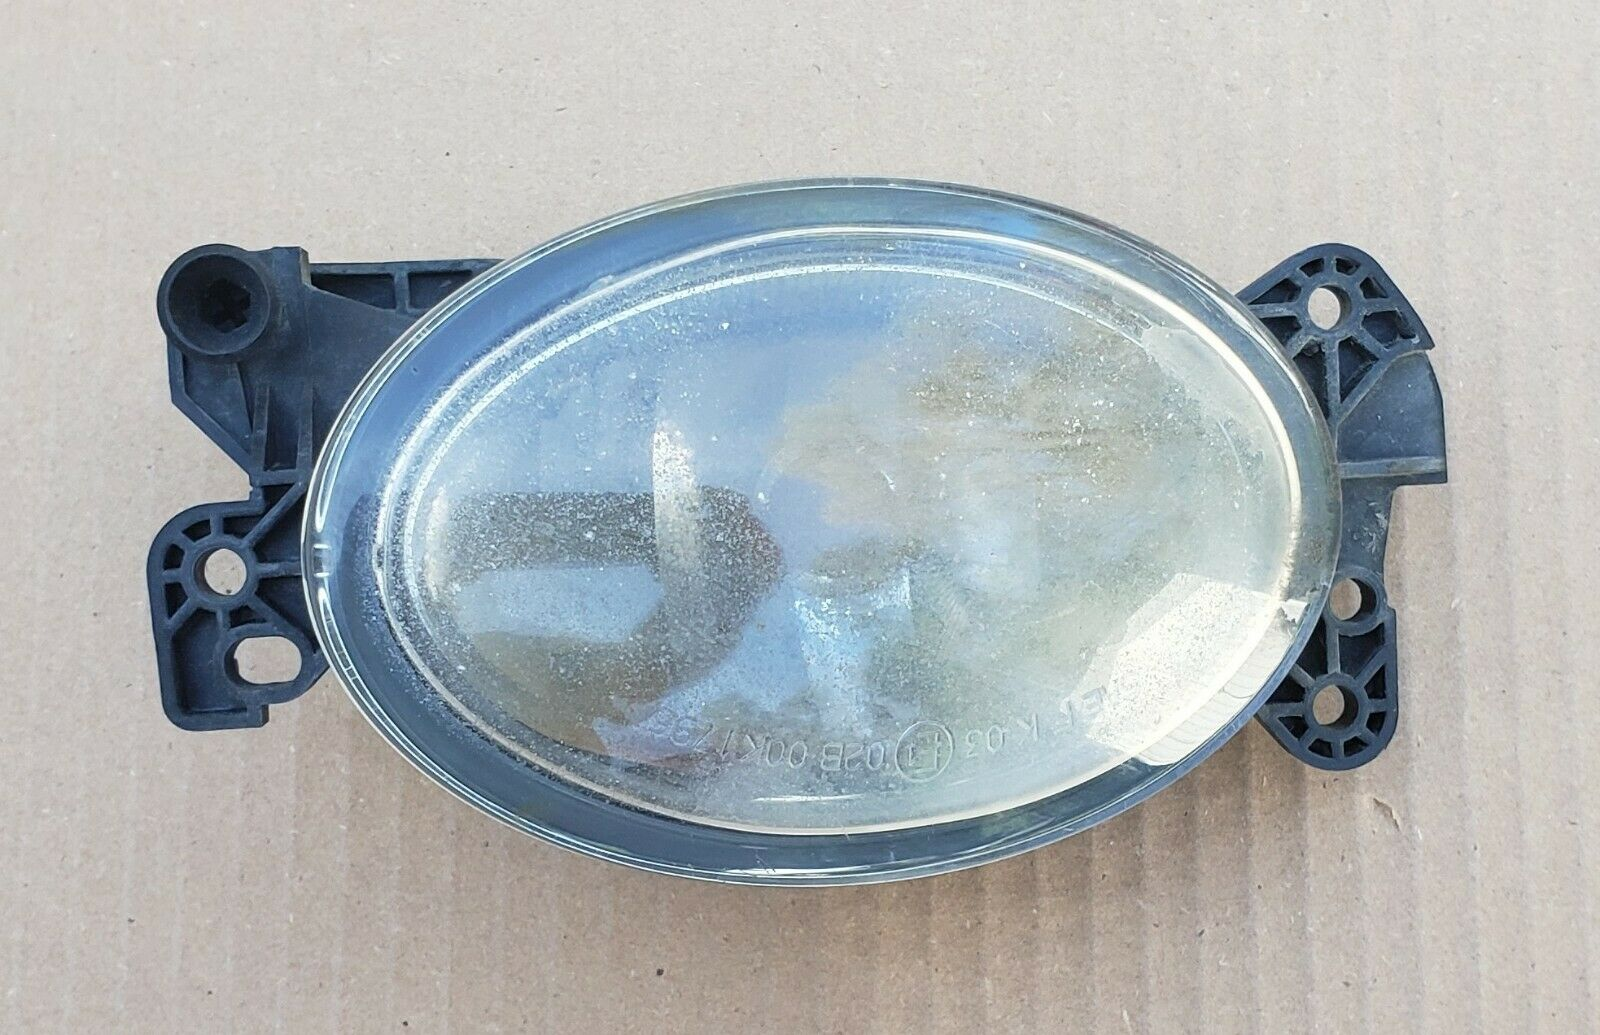 Mercedes CLS 500 550 Fog Lamp Right W219 OEM 2006 2007 2008 2009 2010 2011